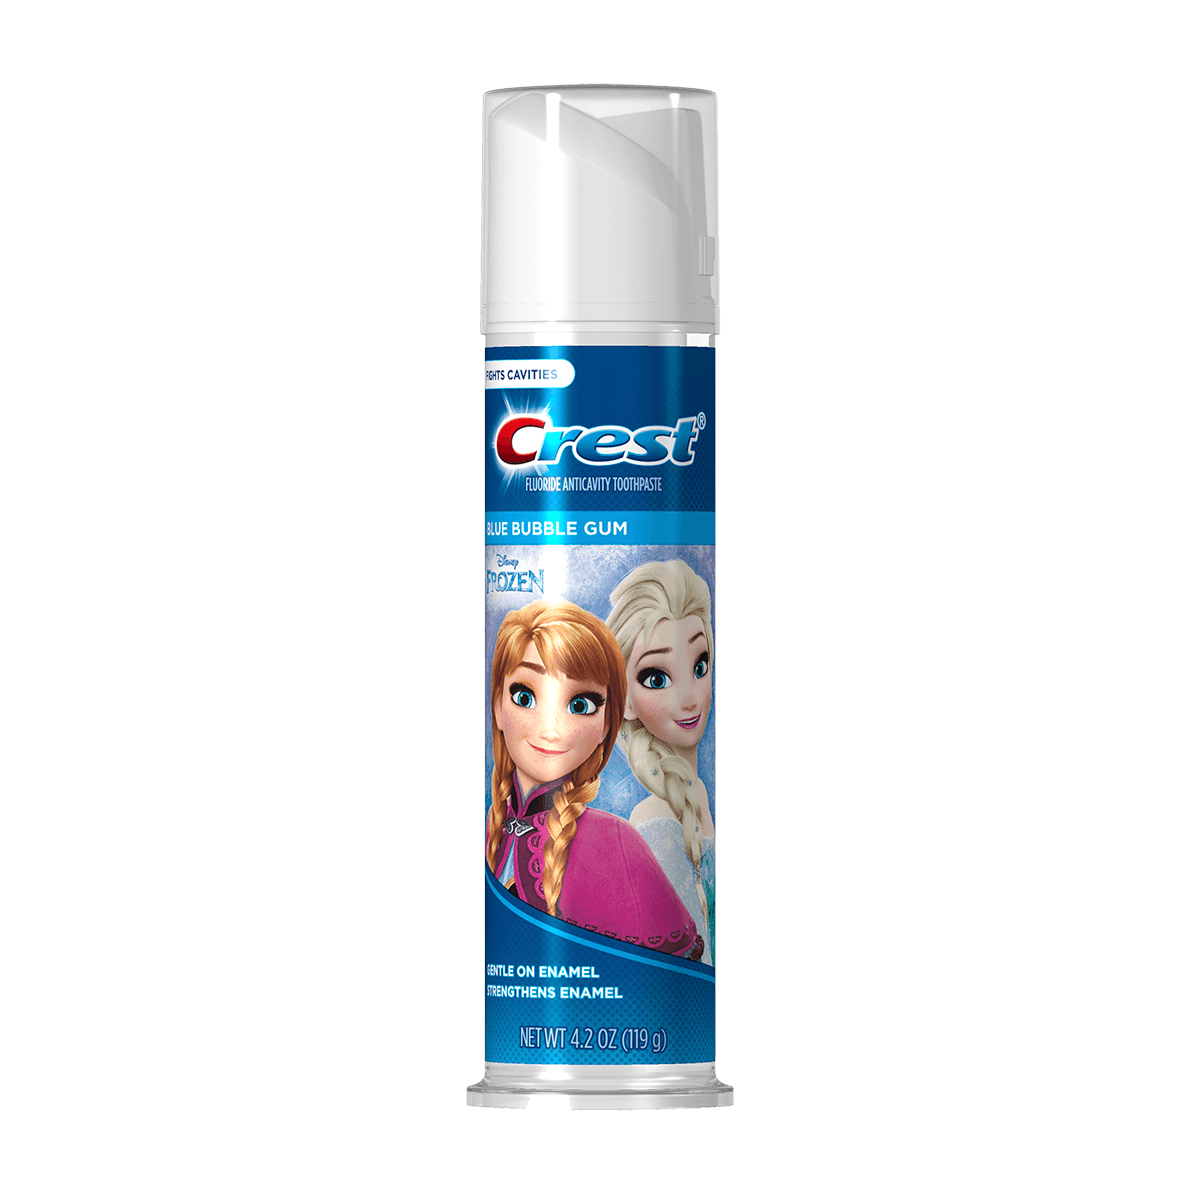 Crest Kid's Toothpaste featuring Disney's Frozen